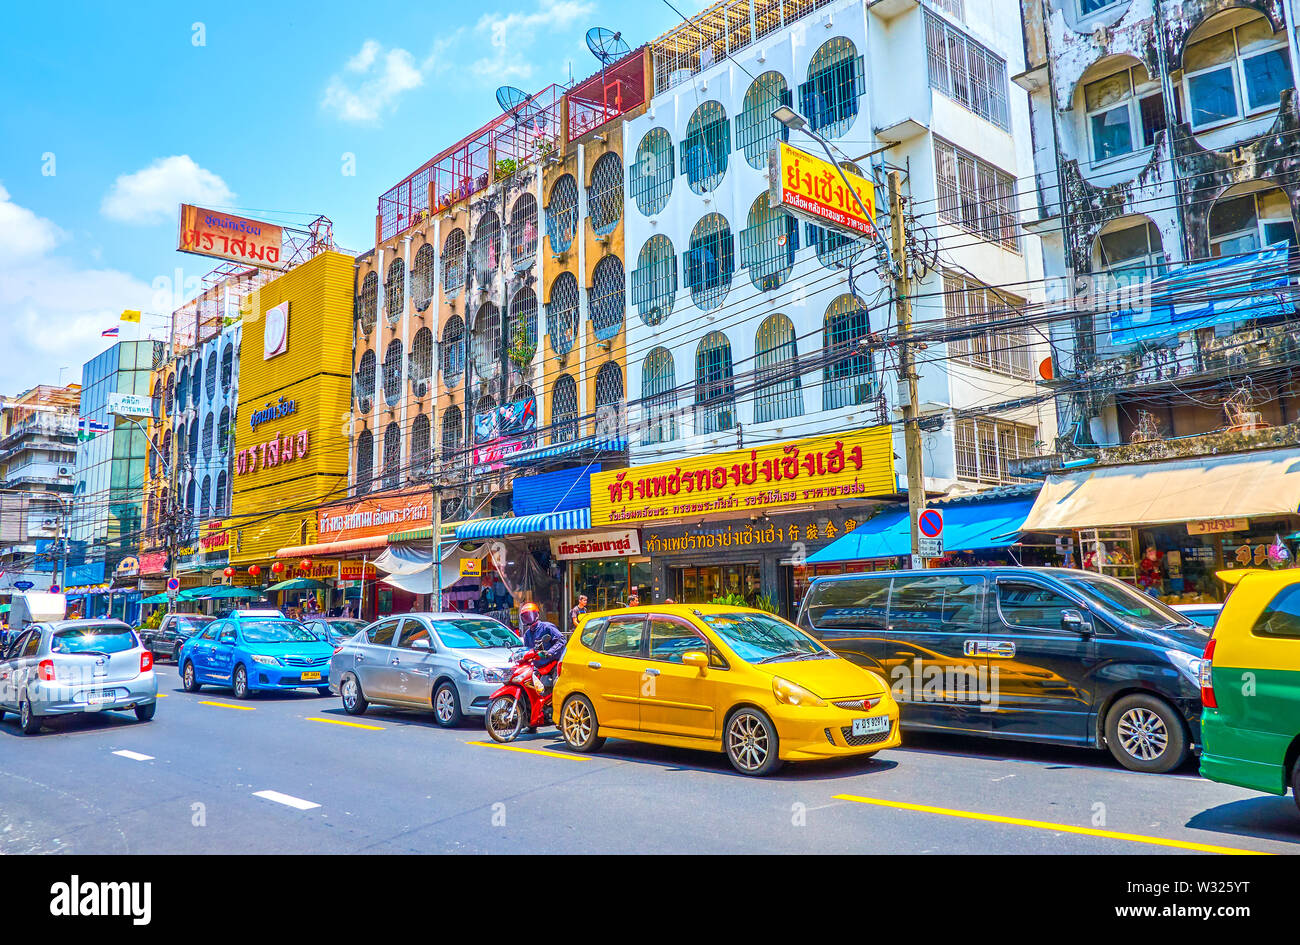 BANGKOK, THAILAND - APRIL 22, 2019: The small traffic jam in central tourist Banglampu district, on April 22 in Bangkok - Stock Image